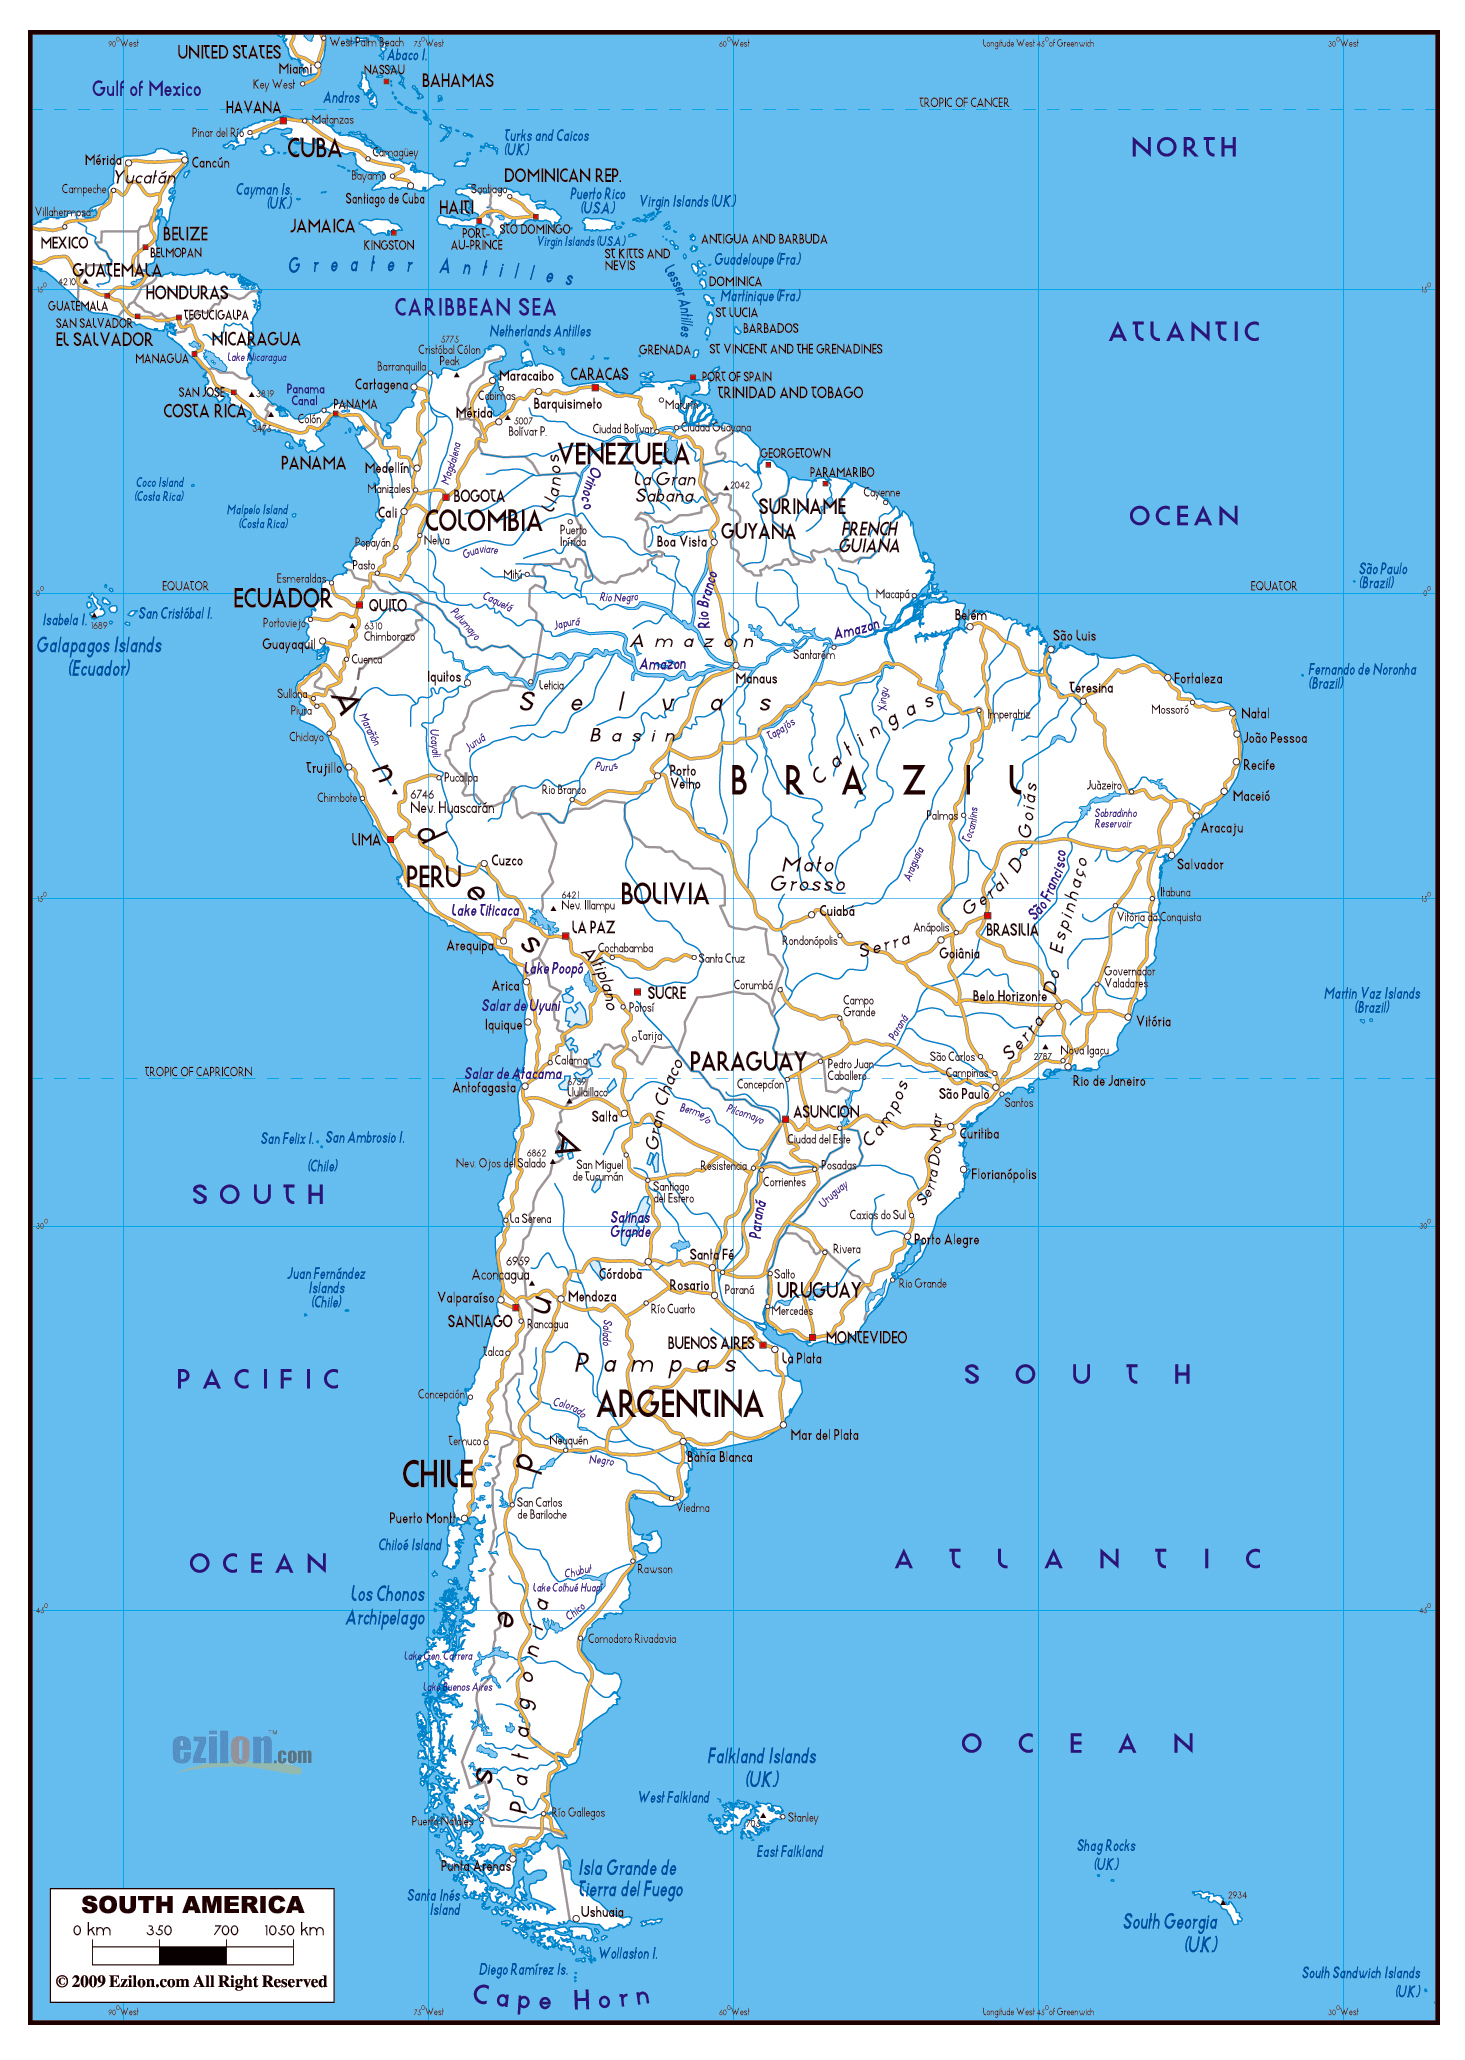 Large road map of South America with major cities South America